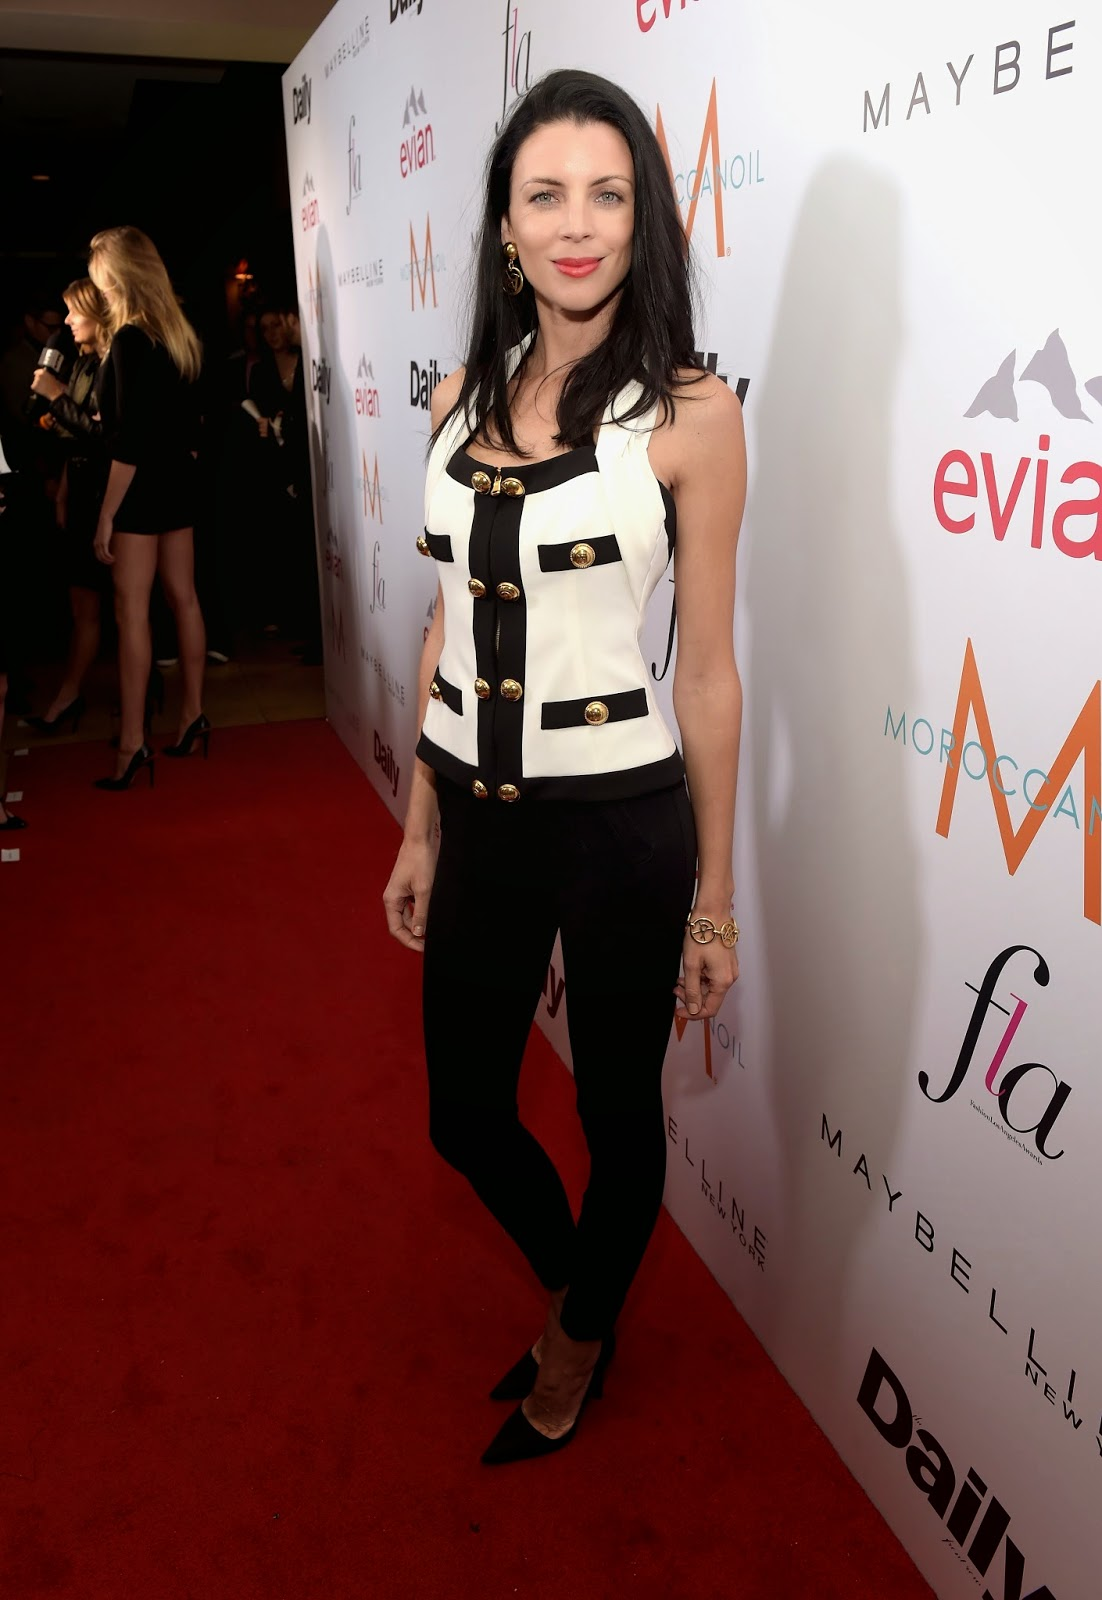 Liberty Ross at LA Fashion Awards